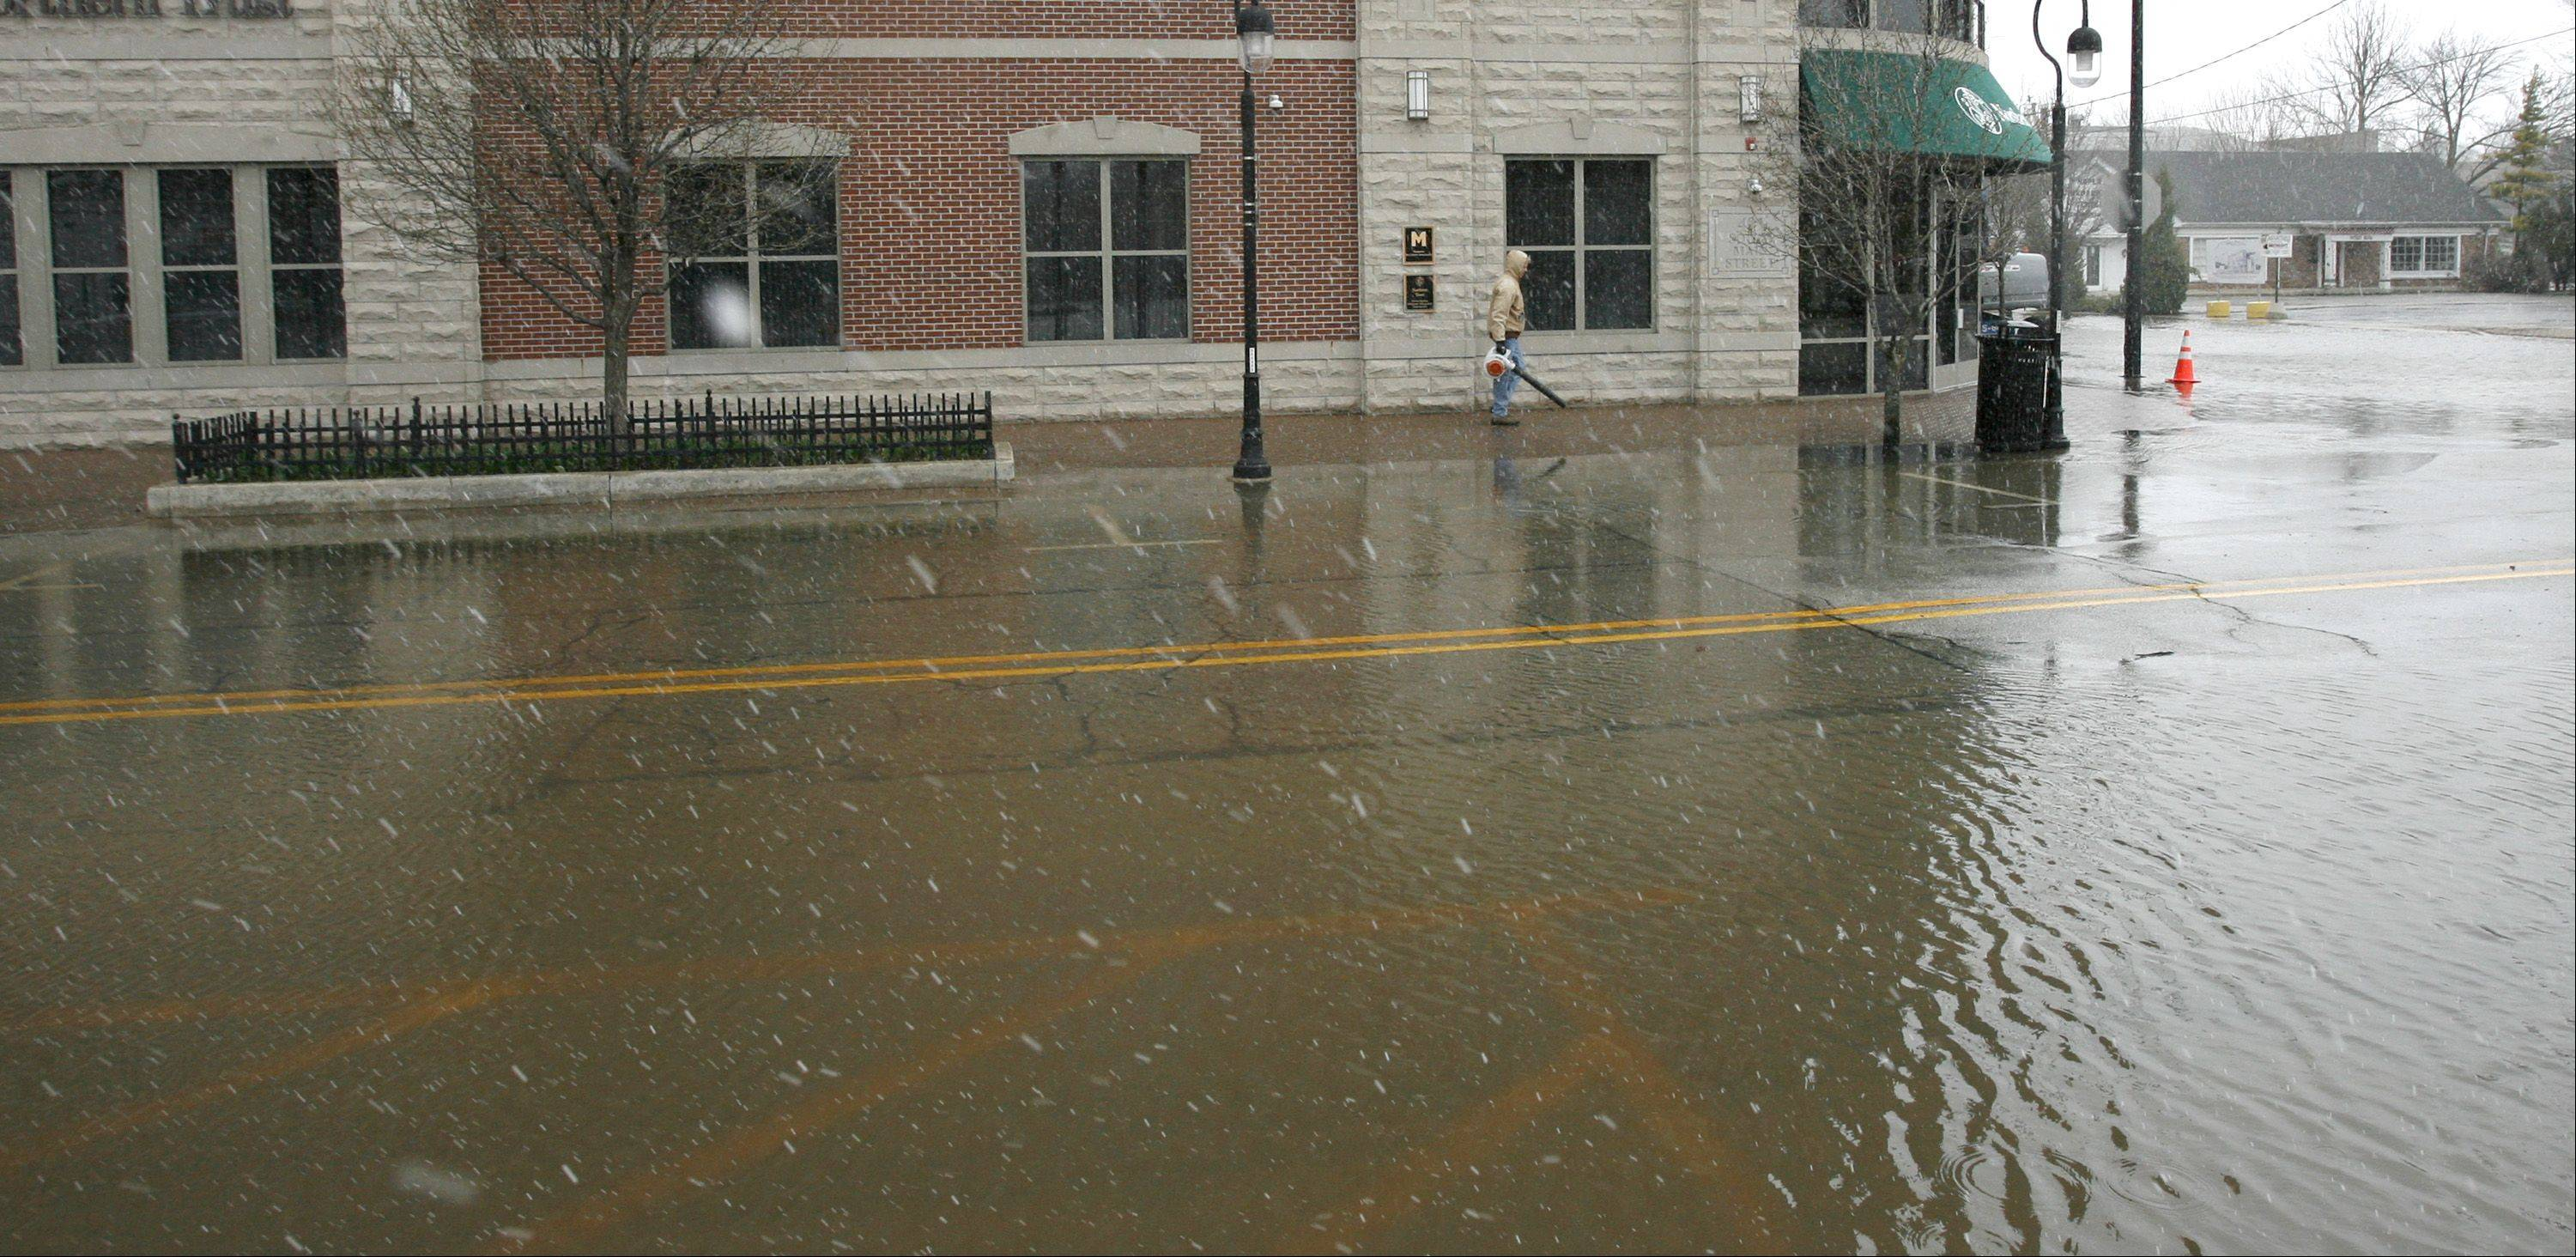 Snow falls, as the city of Naperville works to clean up from downtown flooding.